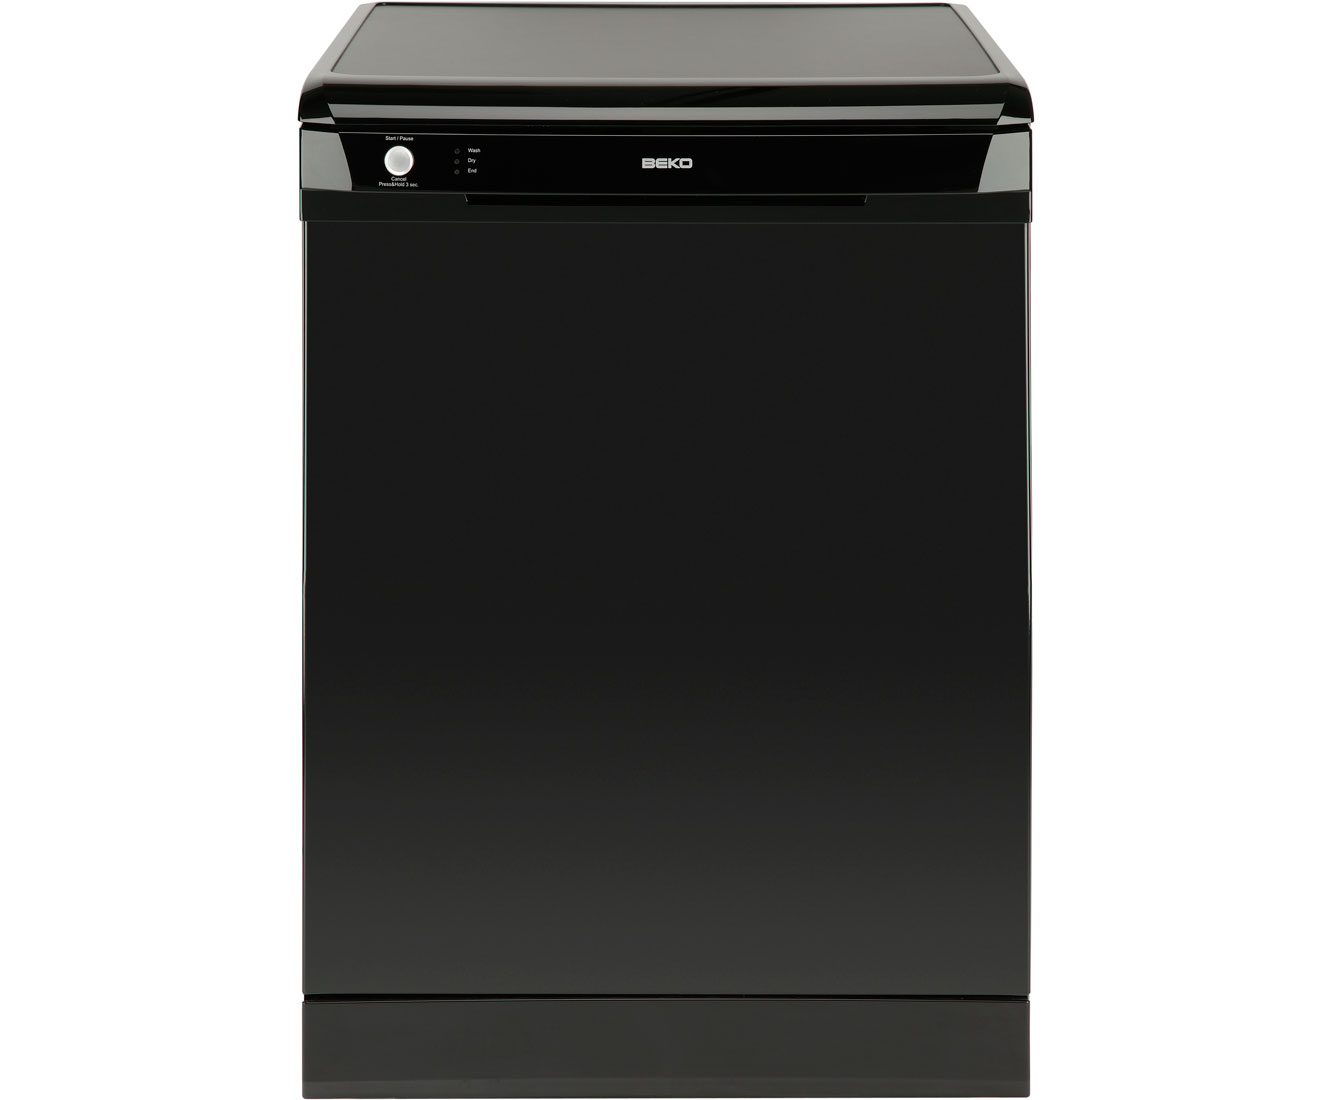 Beko DSFN1534B Standard Dishwasher - Black